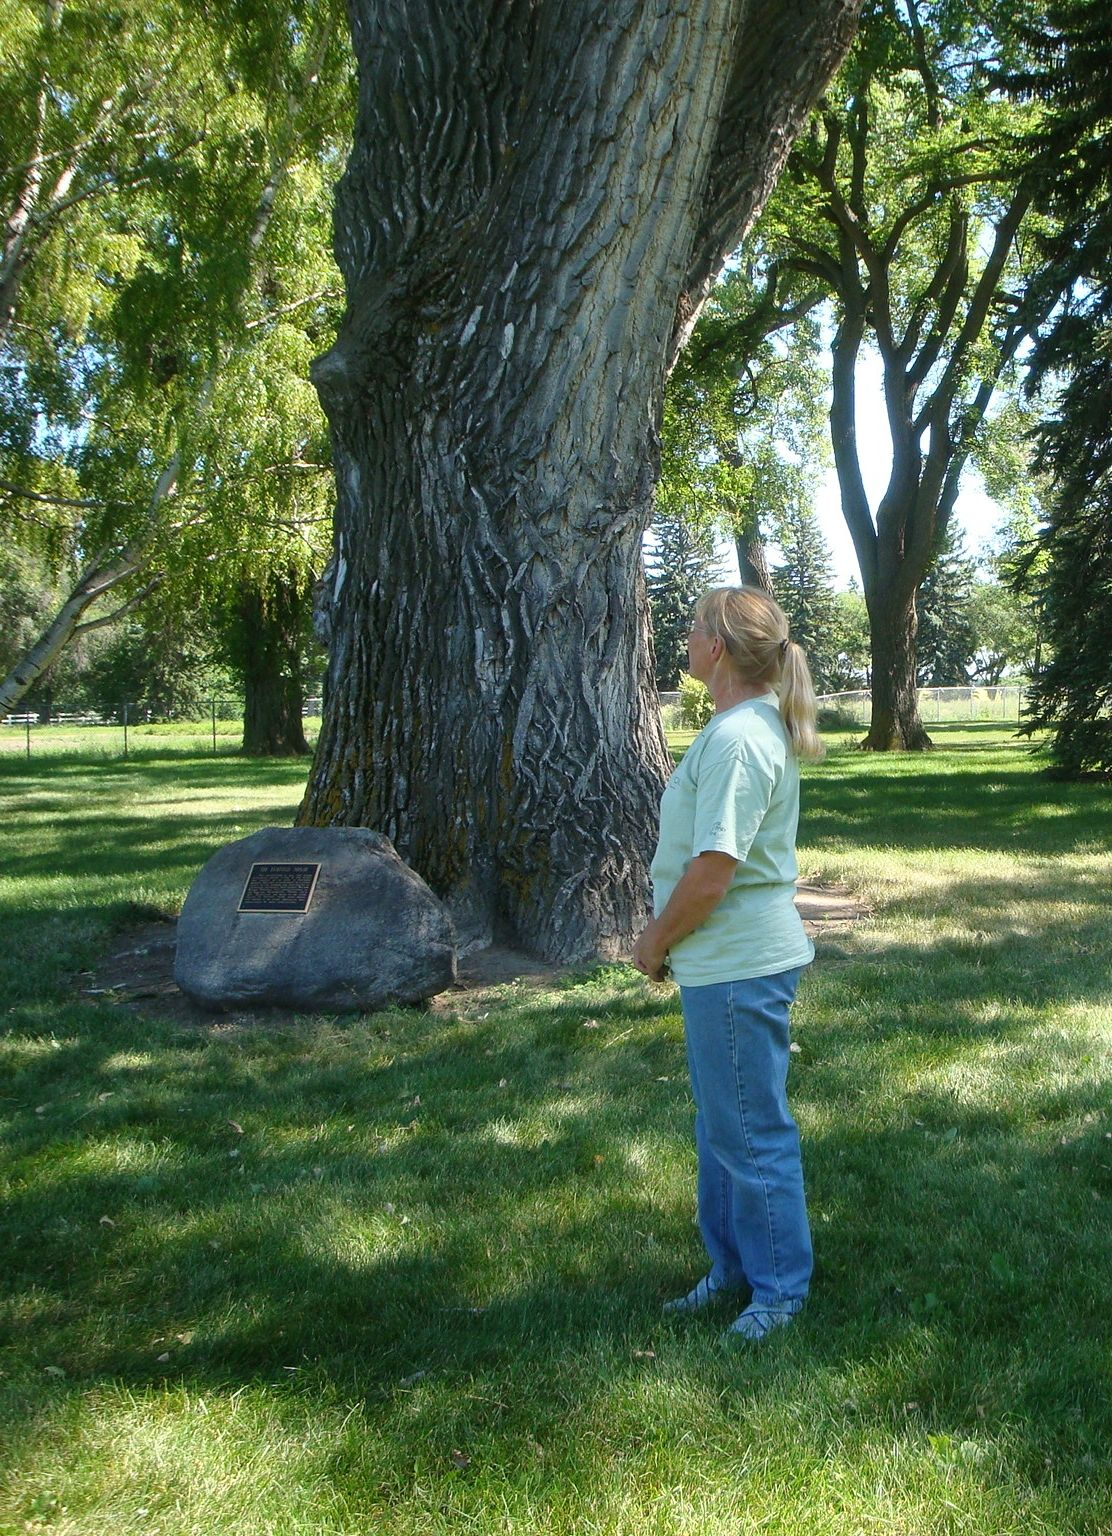 Discussing the History of Heritage Trees of Lethbridge - Fairfield Poplar, Lethbridge Research Stataion